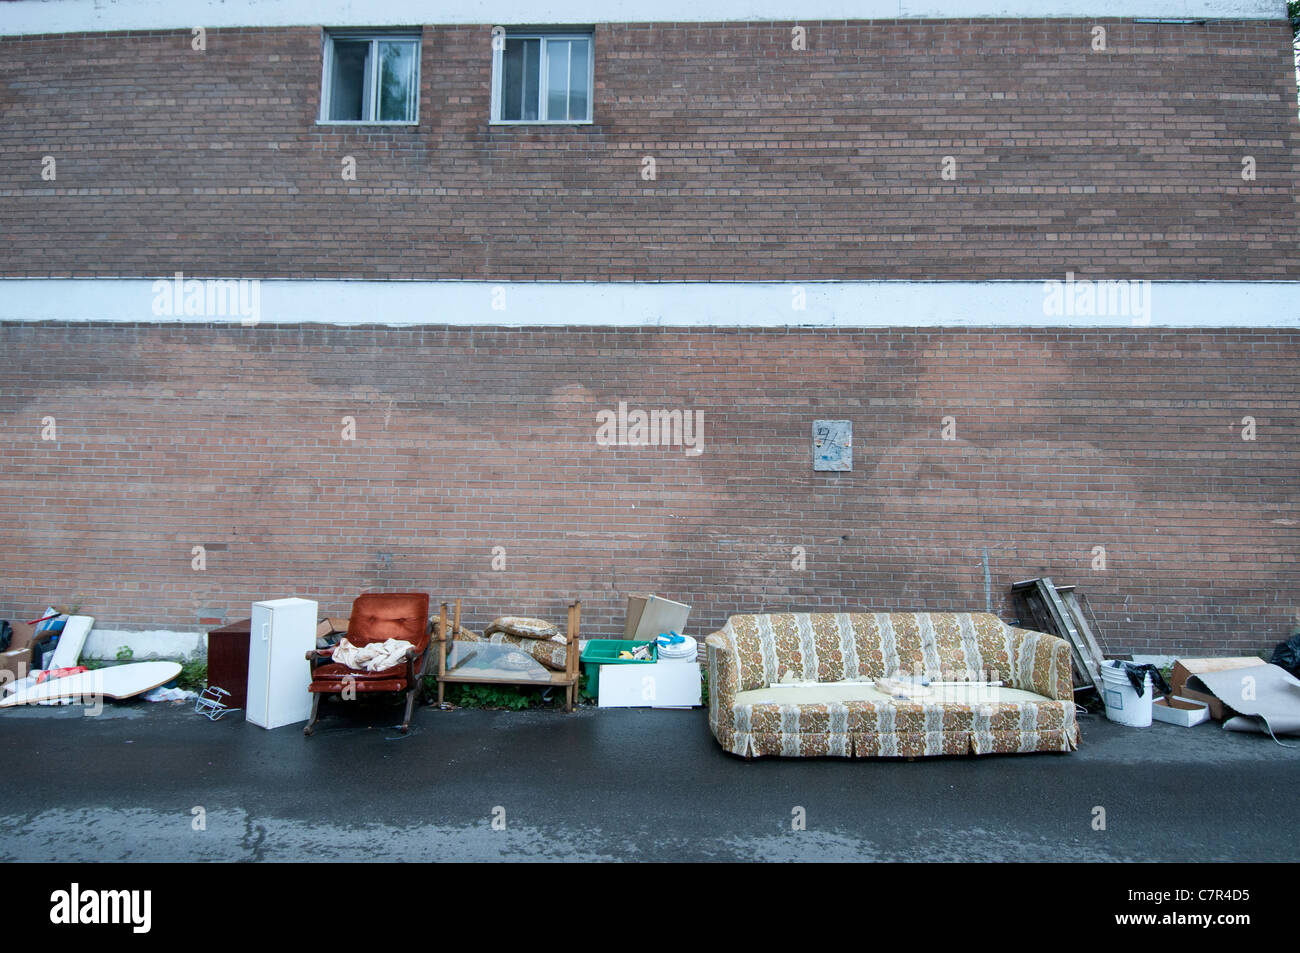 Discarded Furniture thrown on the street Montreal canada - Stock Image